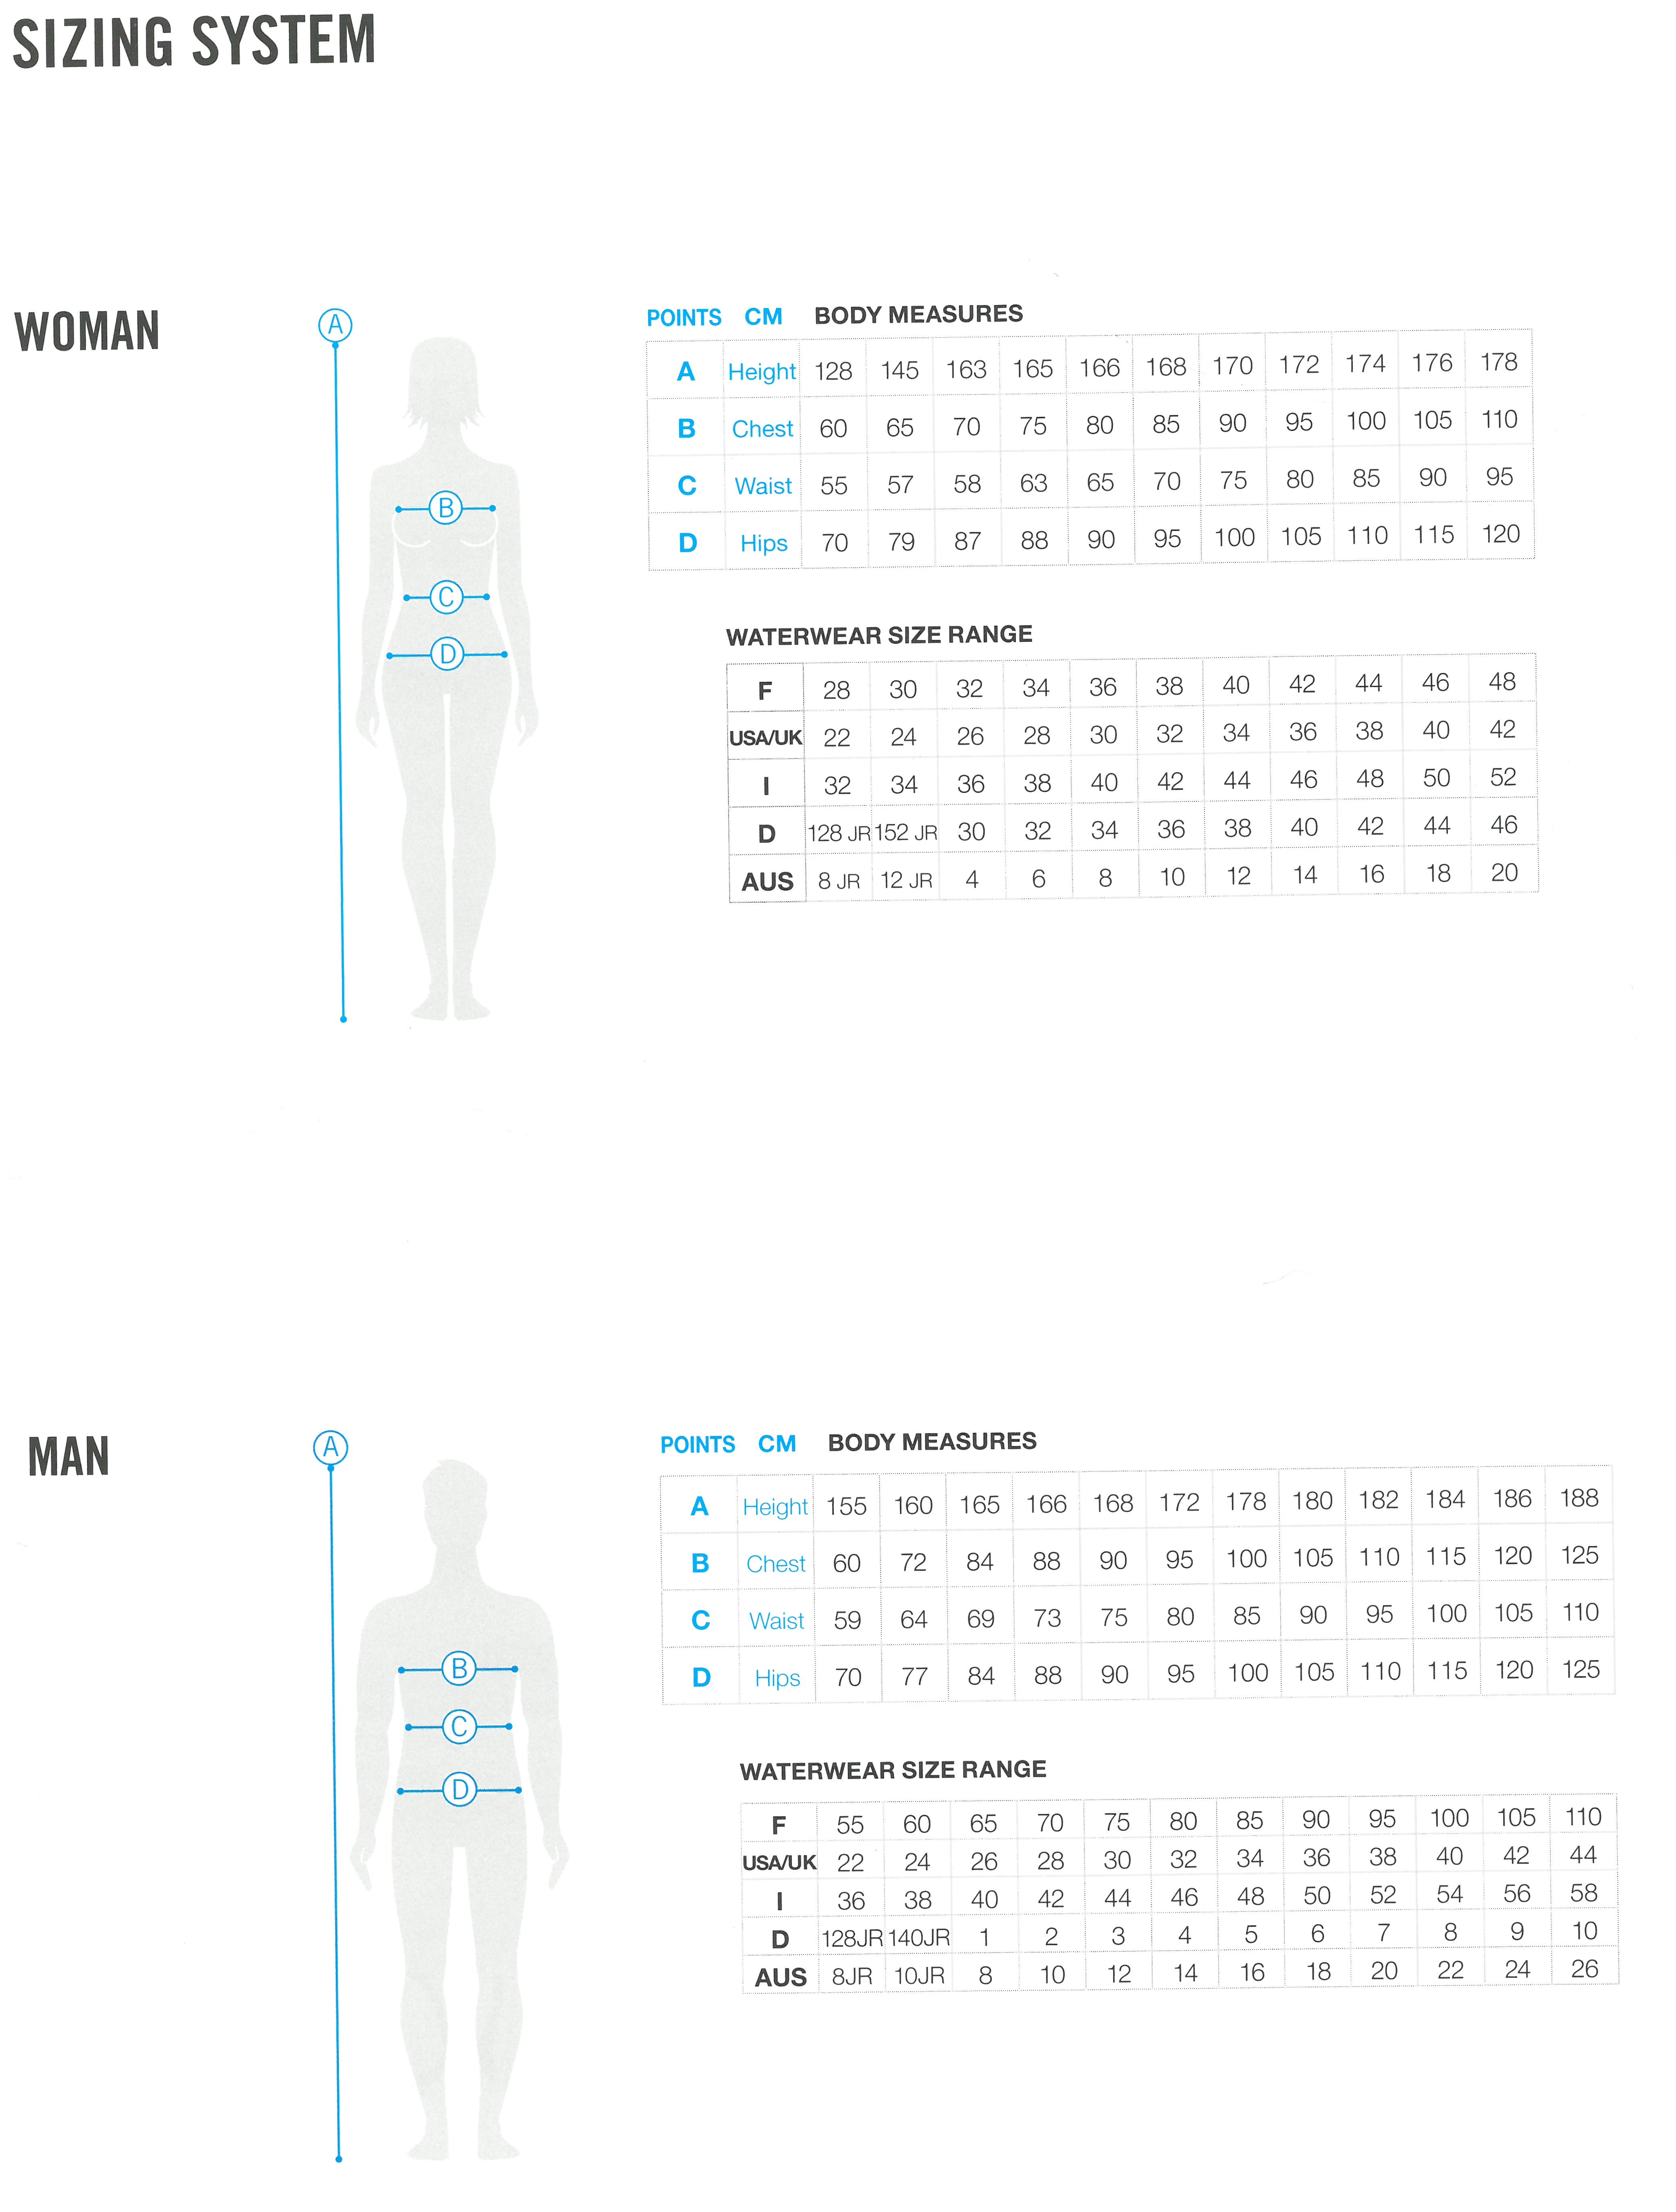 Sizing system ADULT.jpg